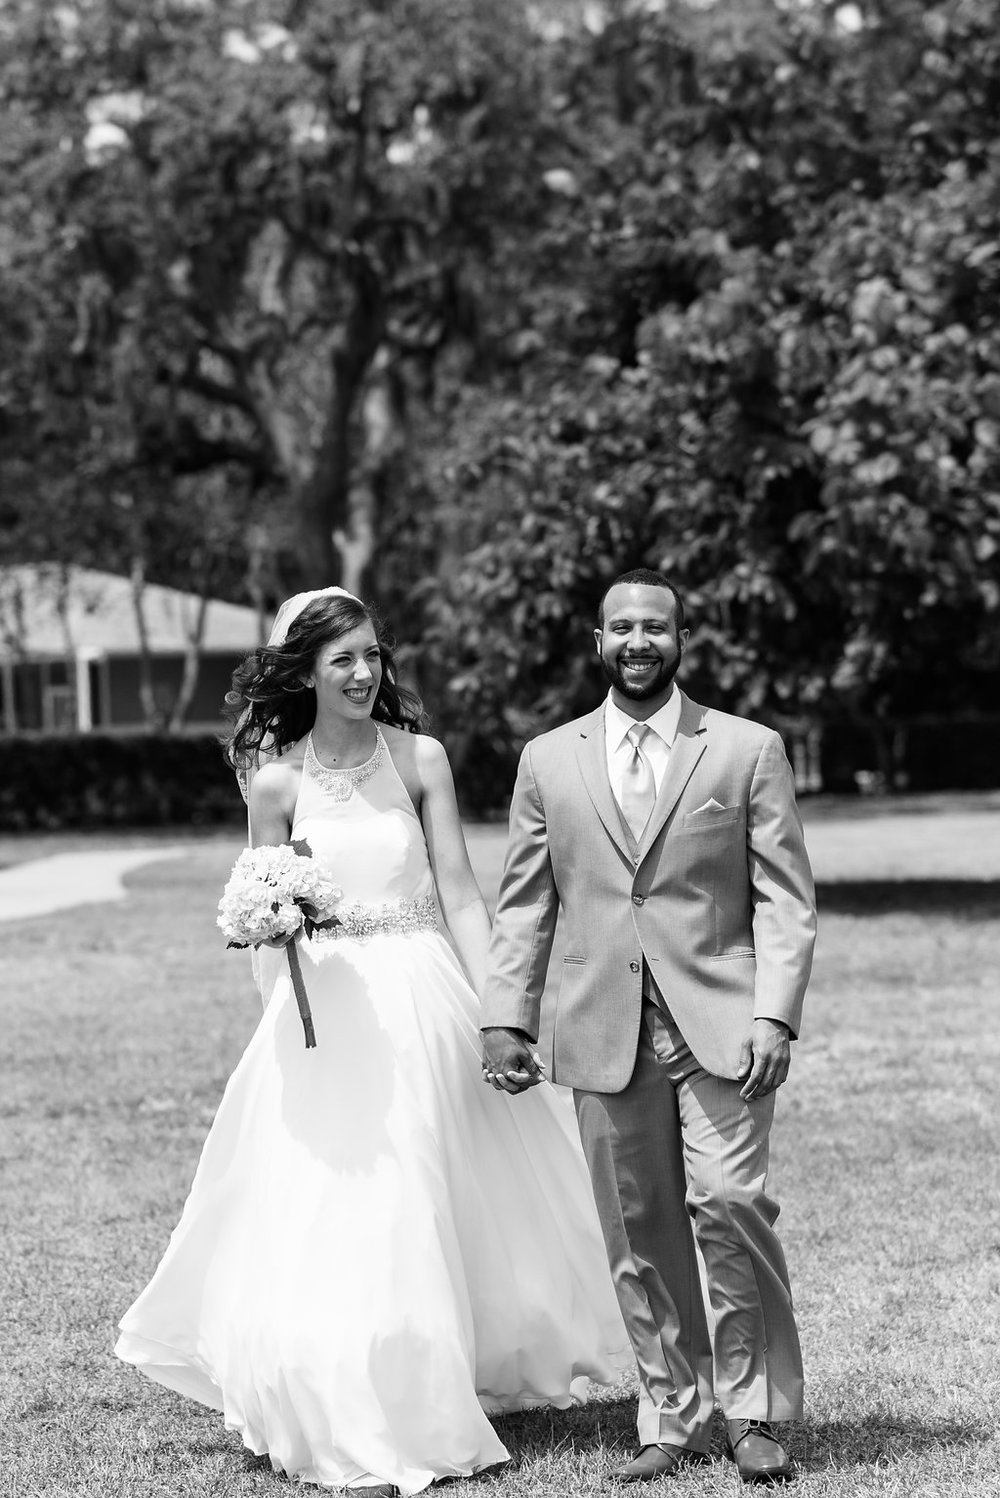 grace&gelmarwedding-77.jpg